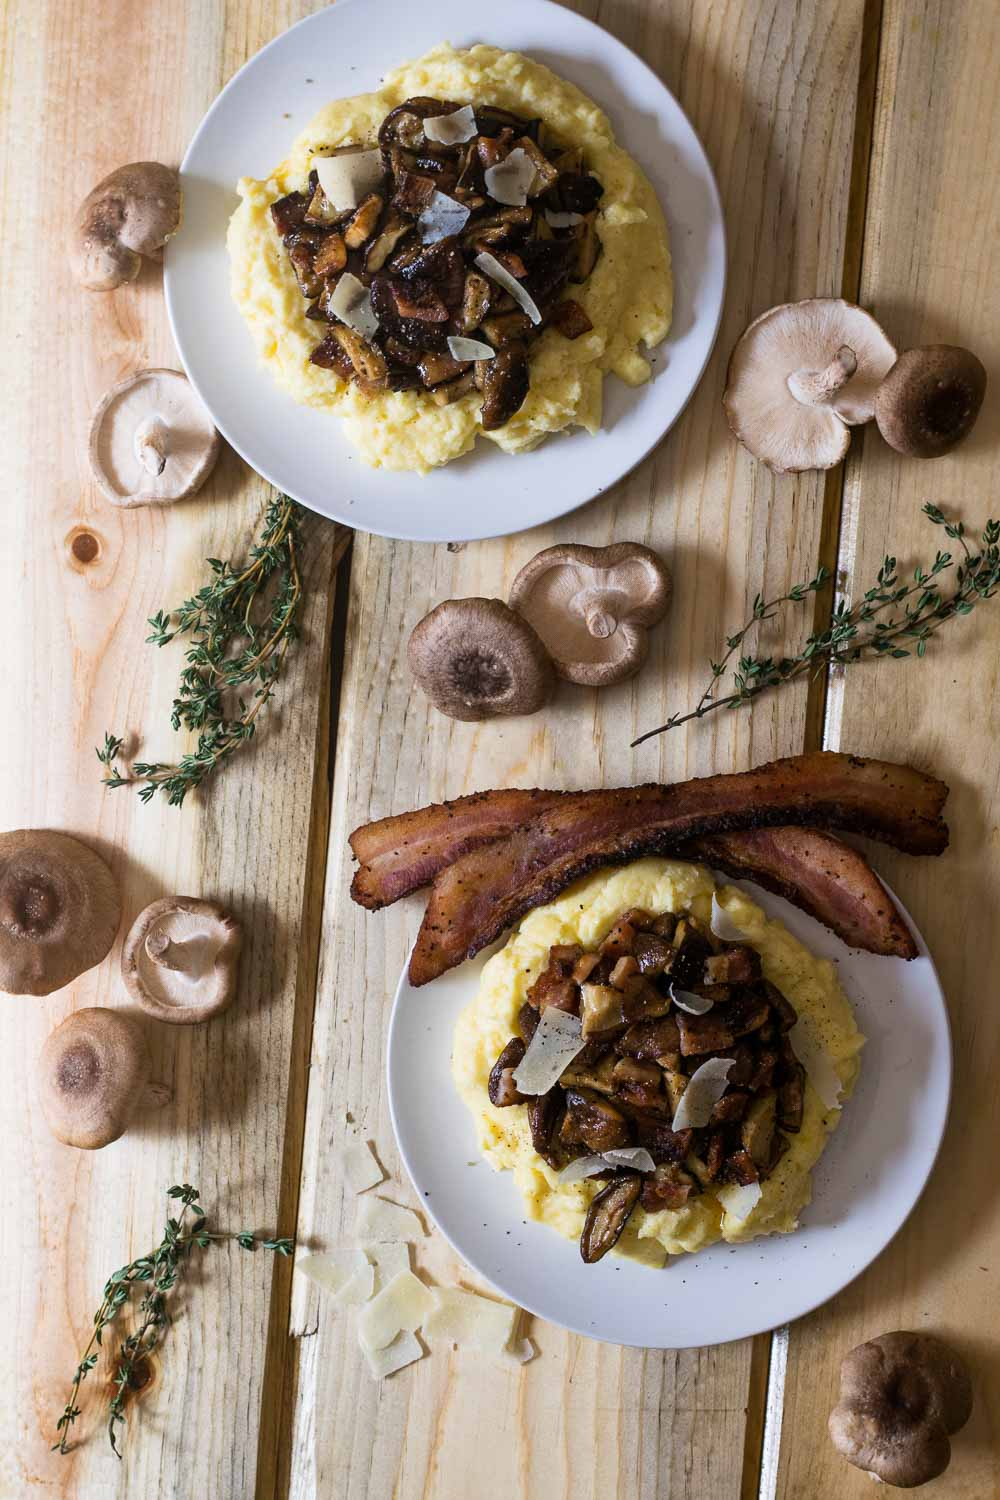 Mushrooms + bacon + parmesan over creamy goat cheese polenta are a powerhouse of flavor! Don't limit carbonara only to pasta - this is the perfect way to wrap up winter comfort food.